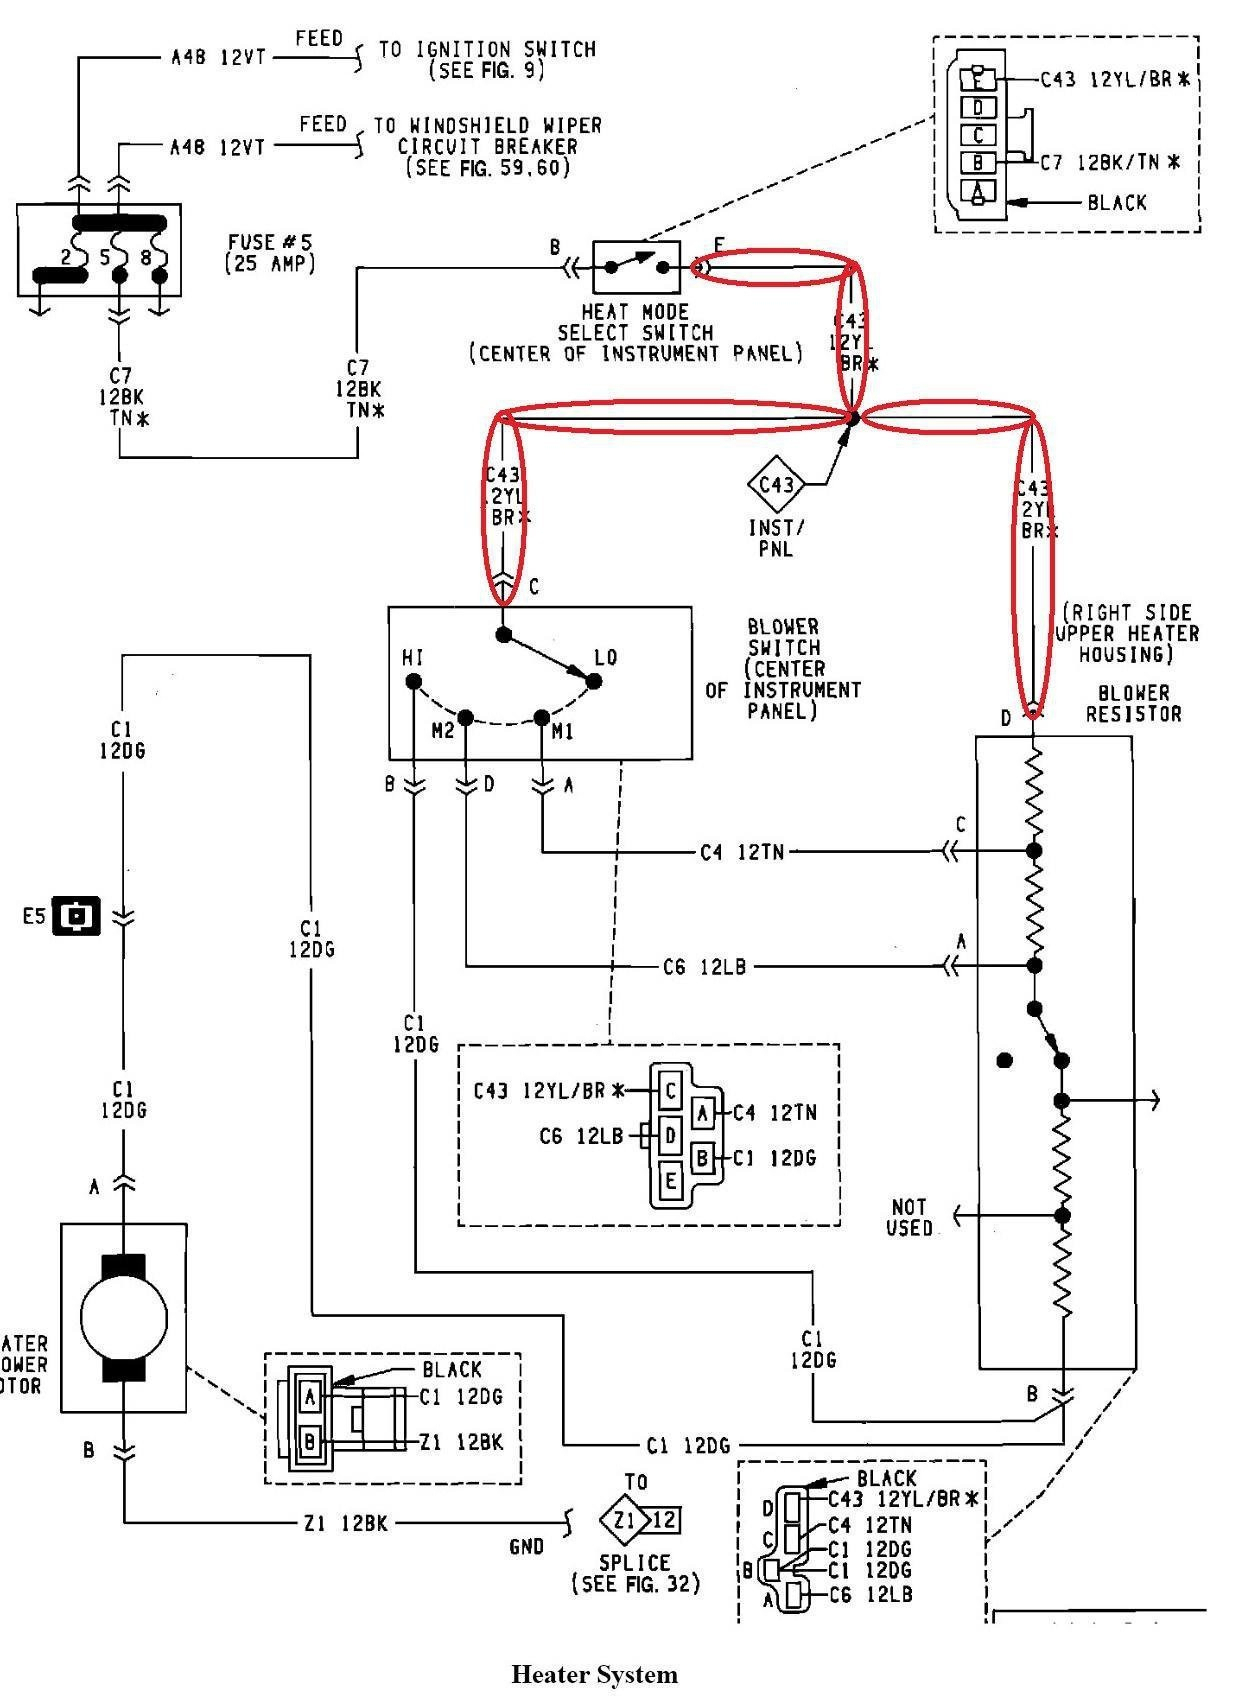 Diagram For Ez Go Golf Cart 36 Volt Battery - Wiring Diagram Explained - Ez Go Wiring Diagram 36 Volt